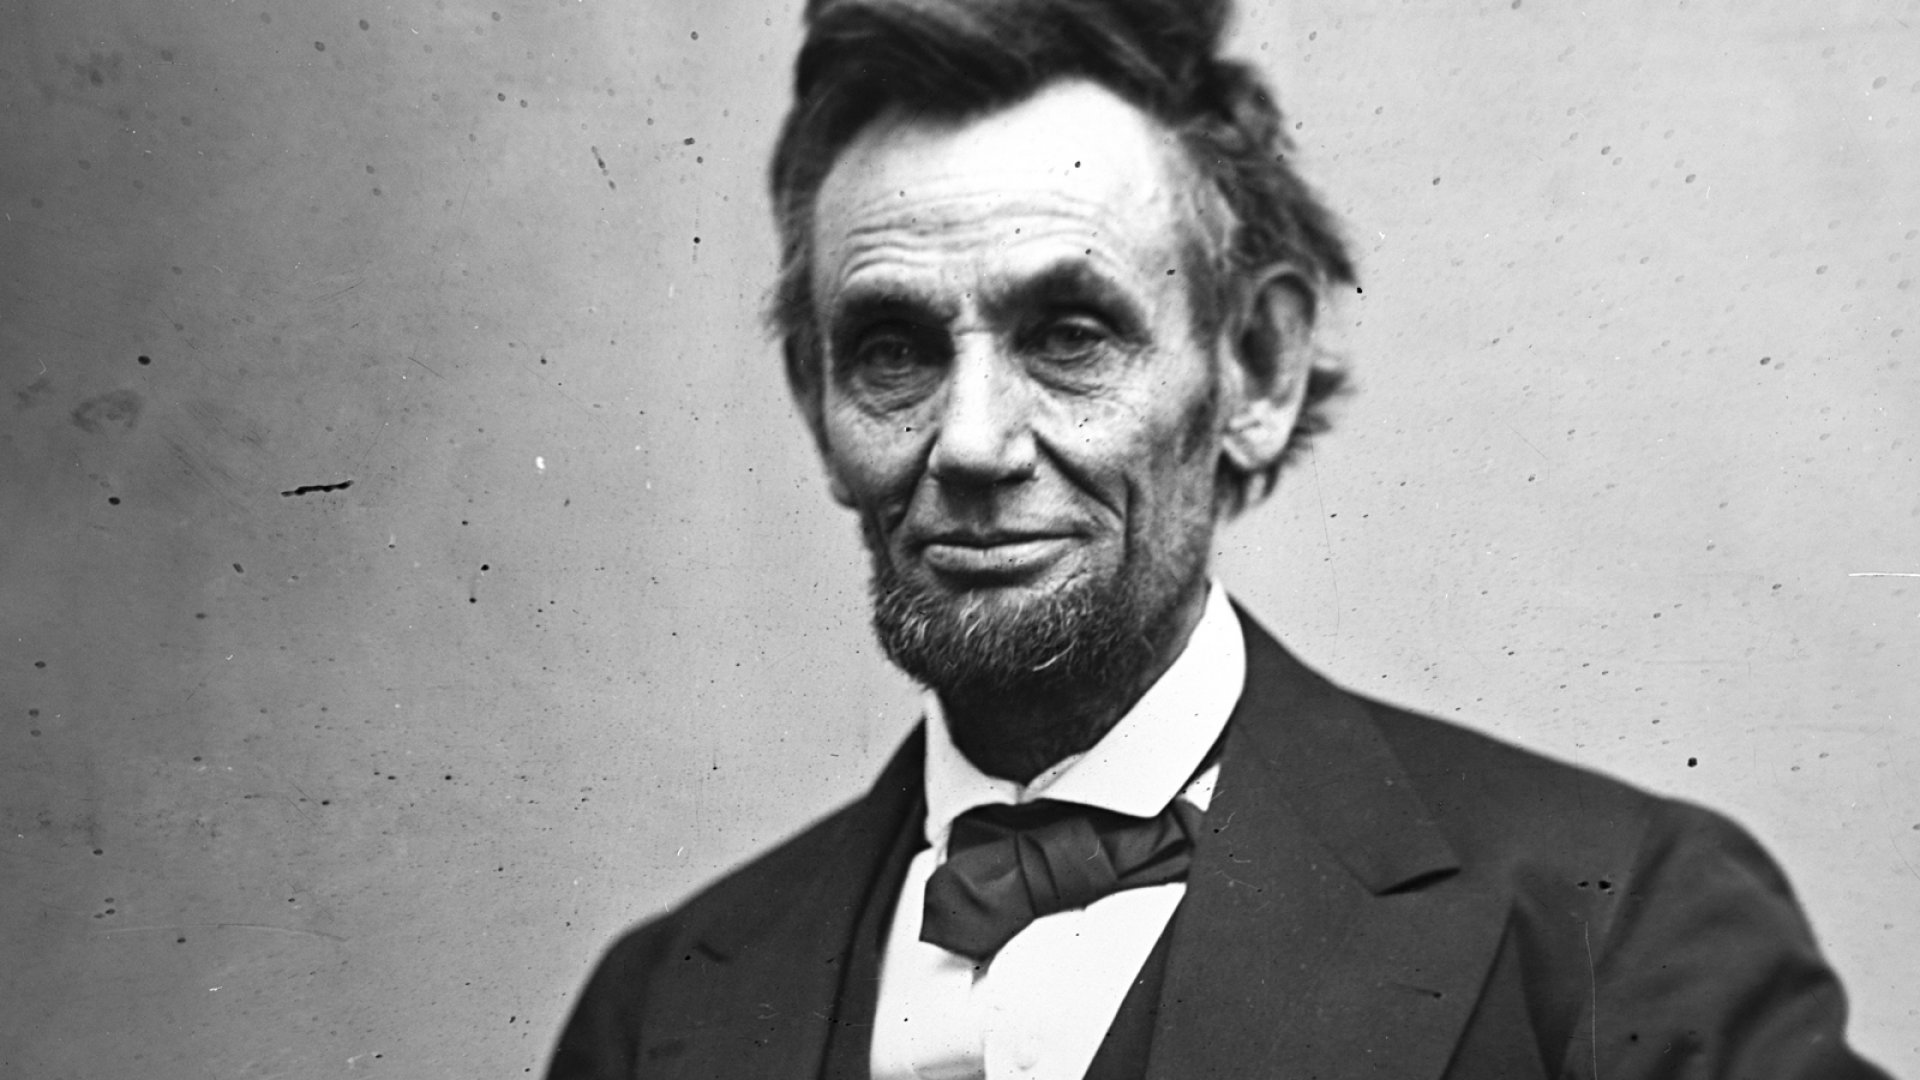 A Harvard Historian Reveals 7 Ways You Can Lead Like Abraham Lincoln |  Inc.com